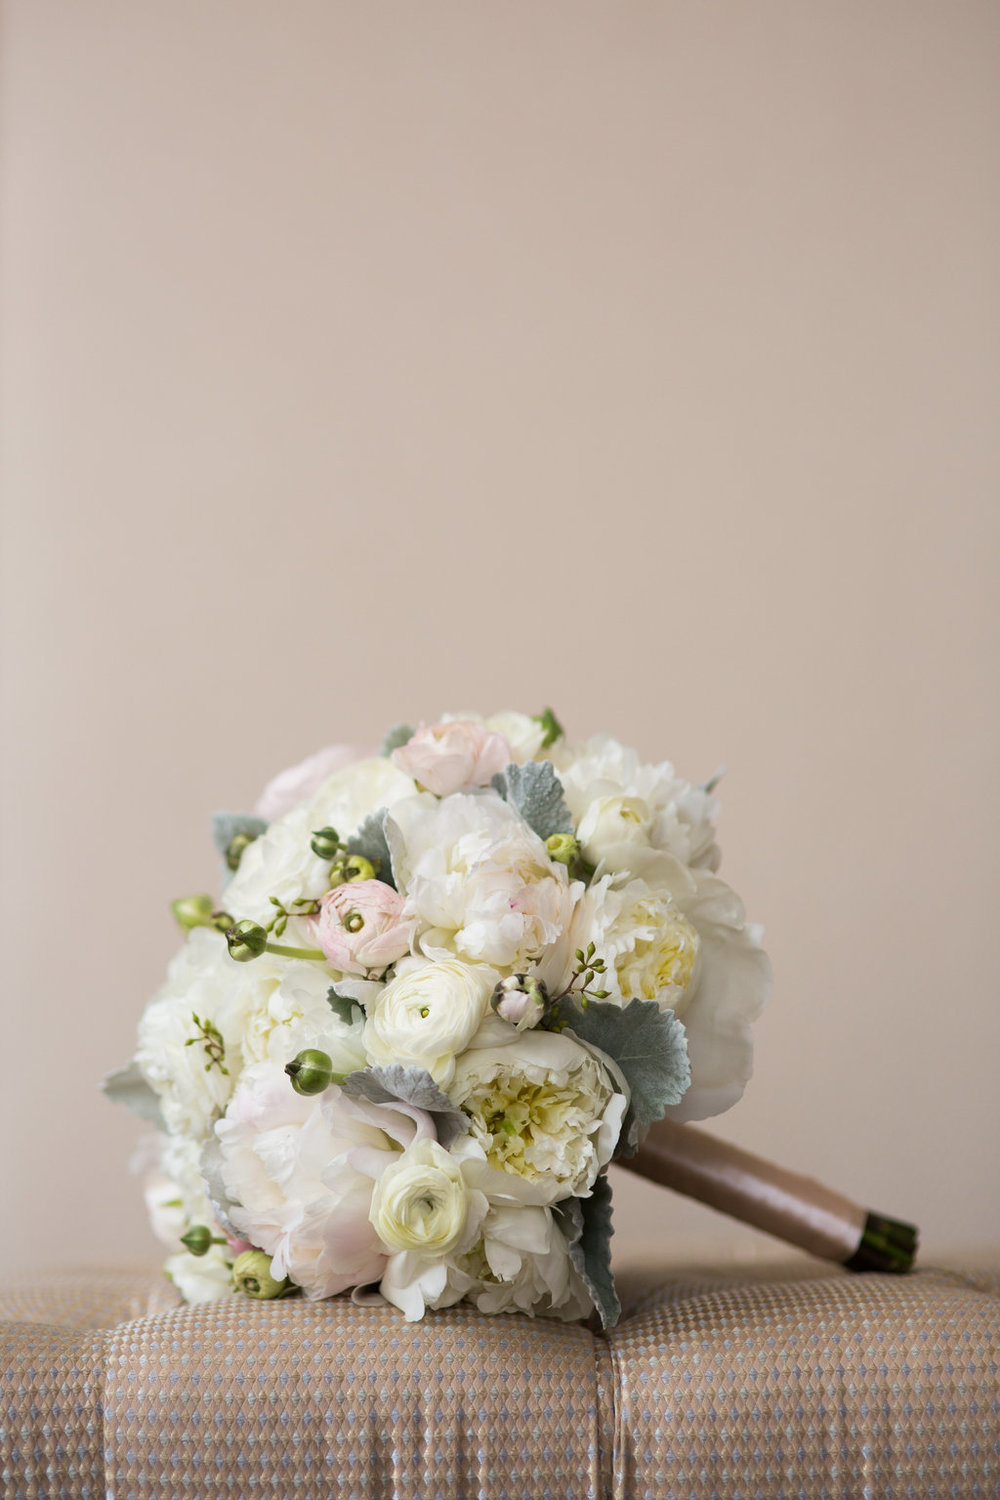 a wedding desinged by Yanni Design Studio.jpg